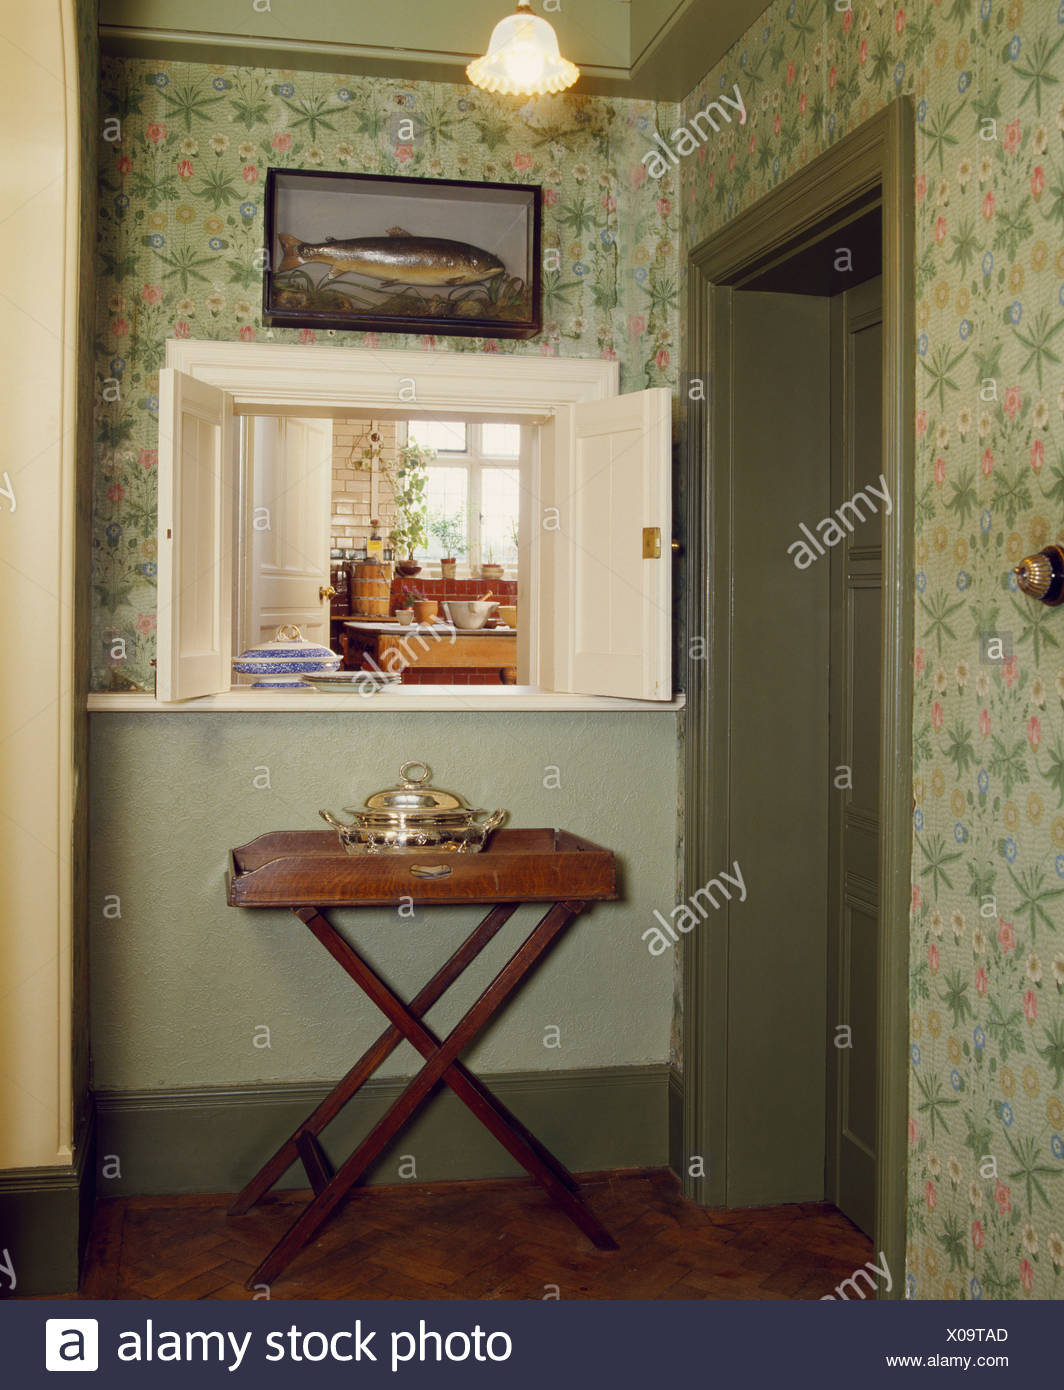 Butlers Tray Below Open Hatch In Hall With Green Wallpaper